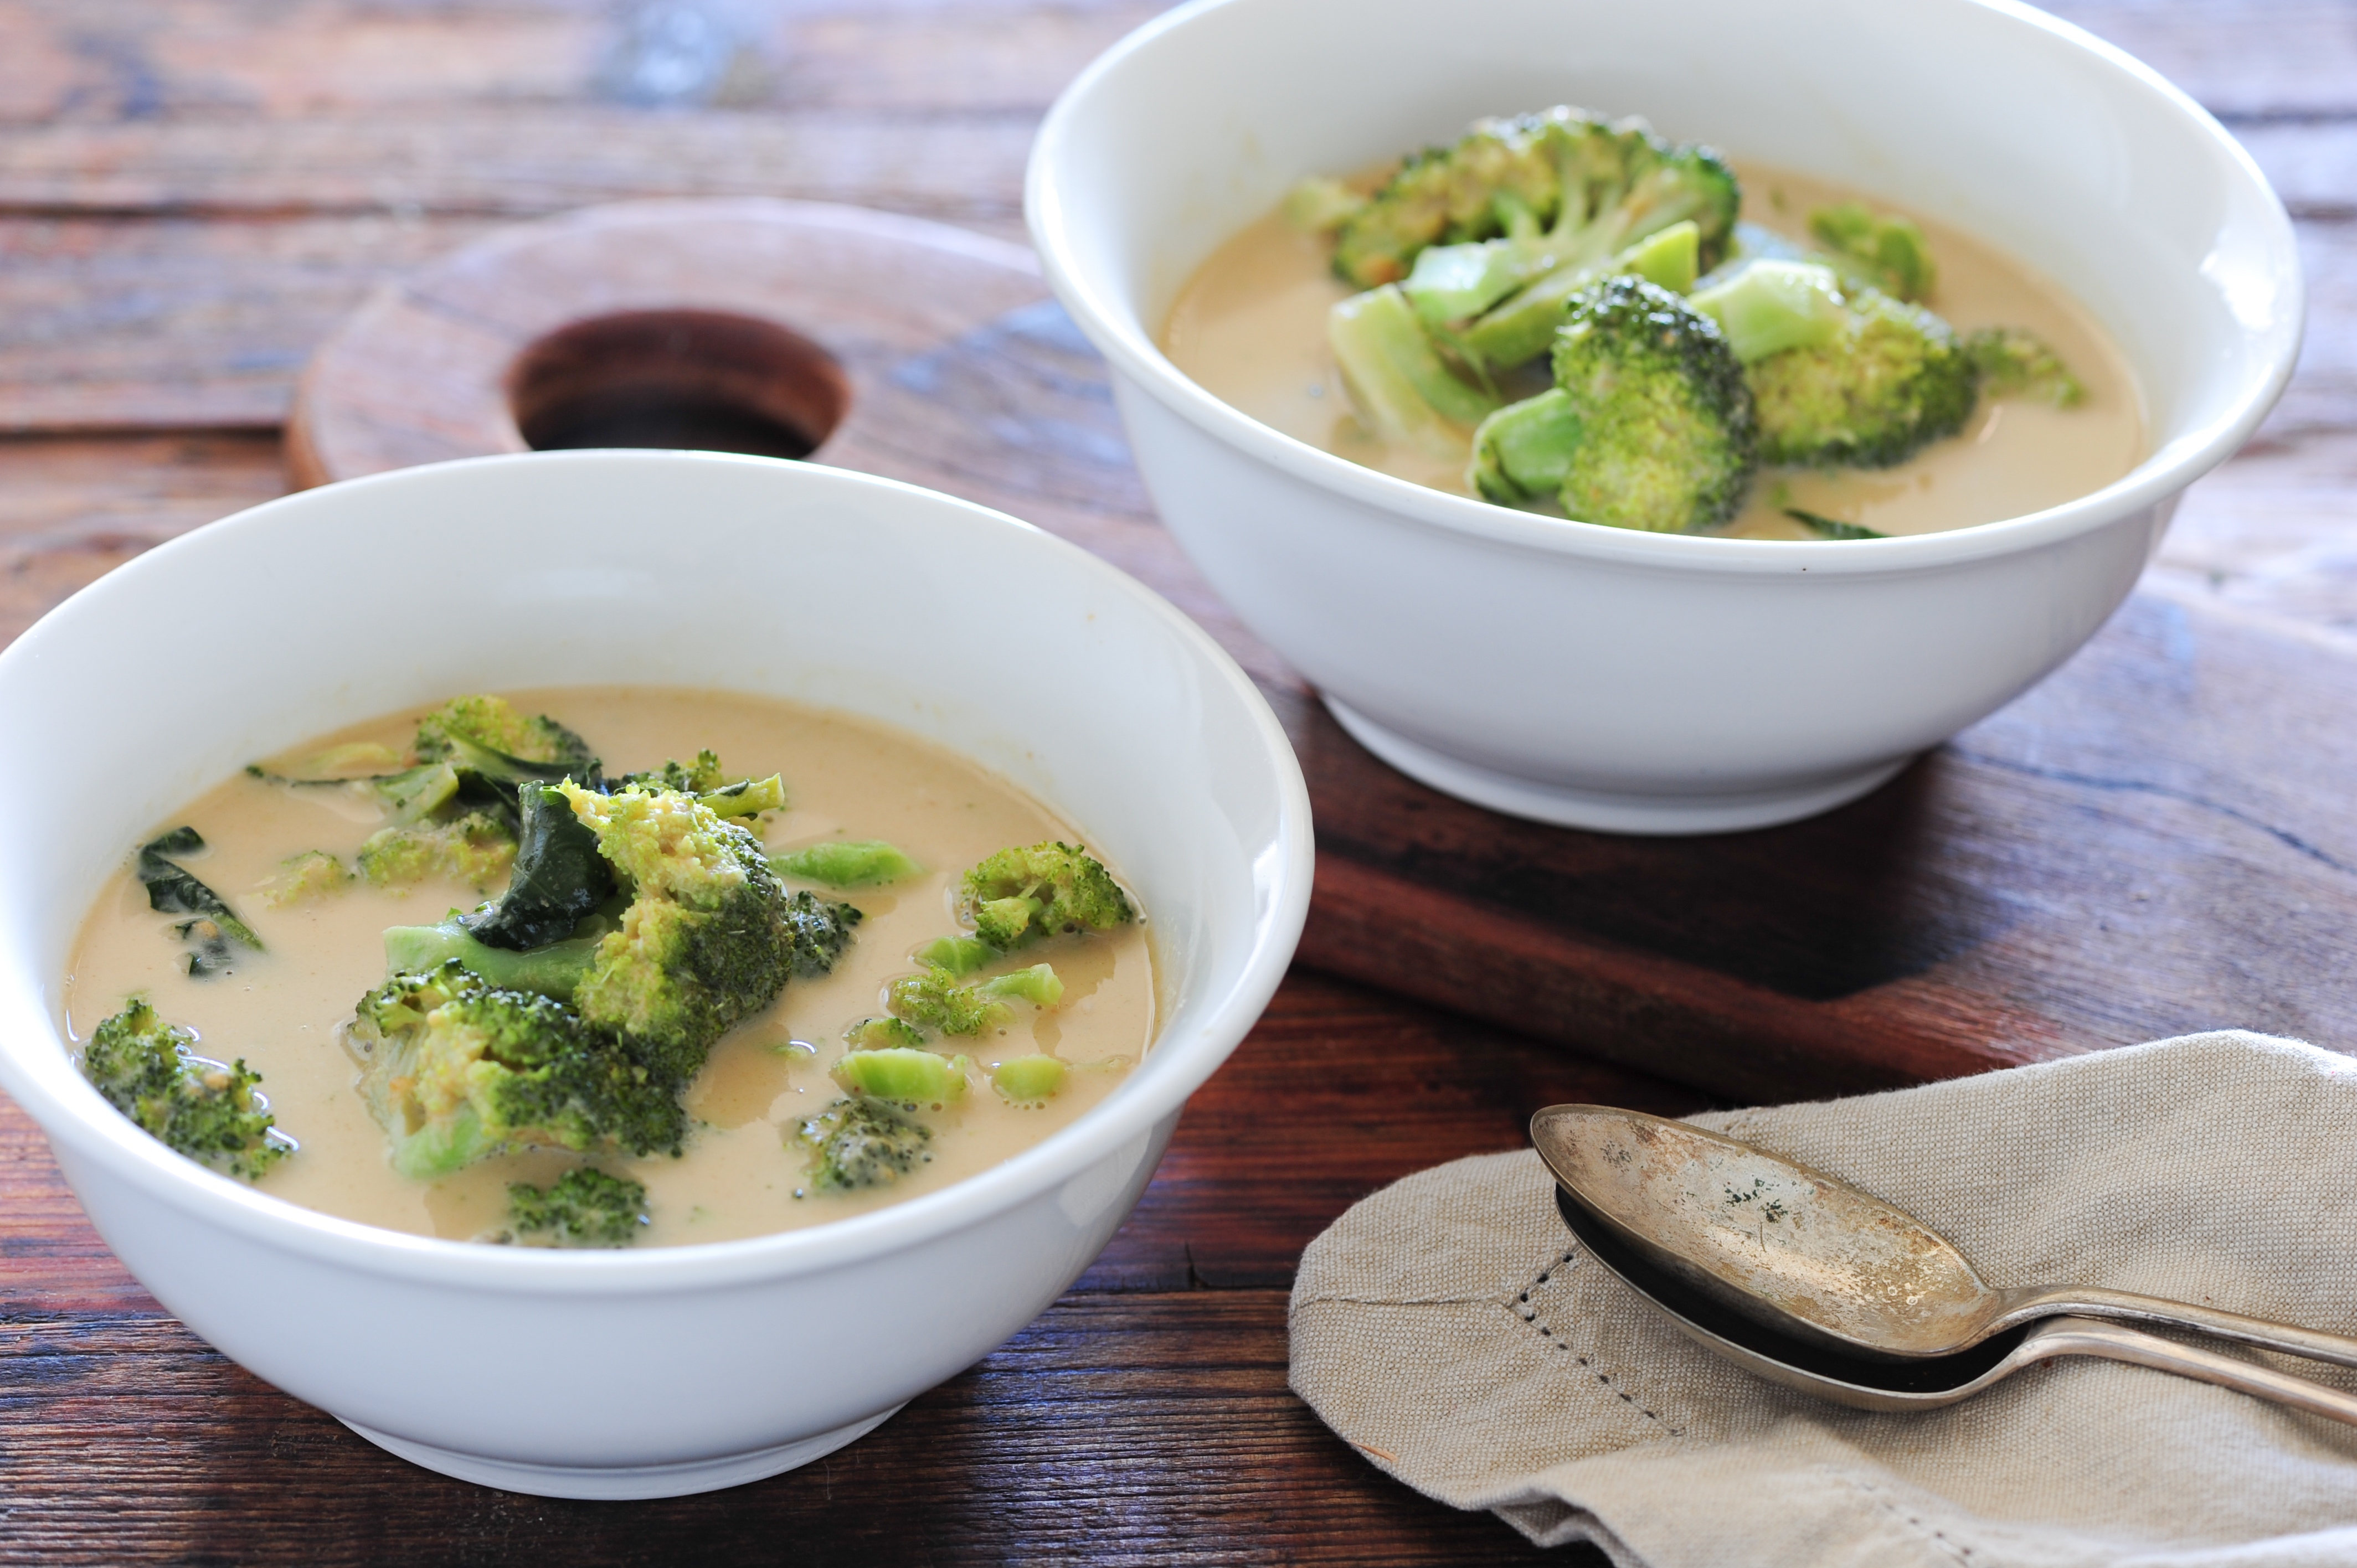 green vinaigrette cucumber salad chicken noodle soup cream of broccoli